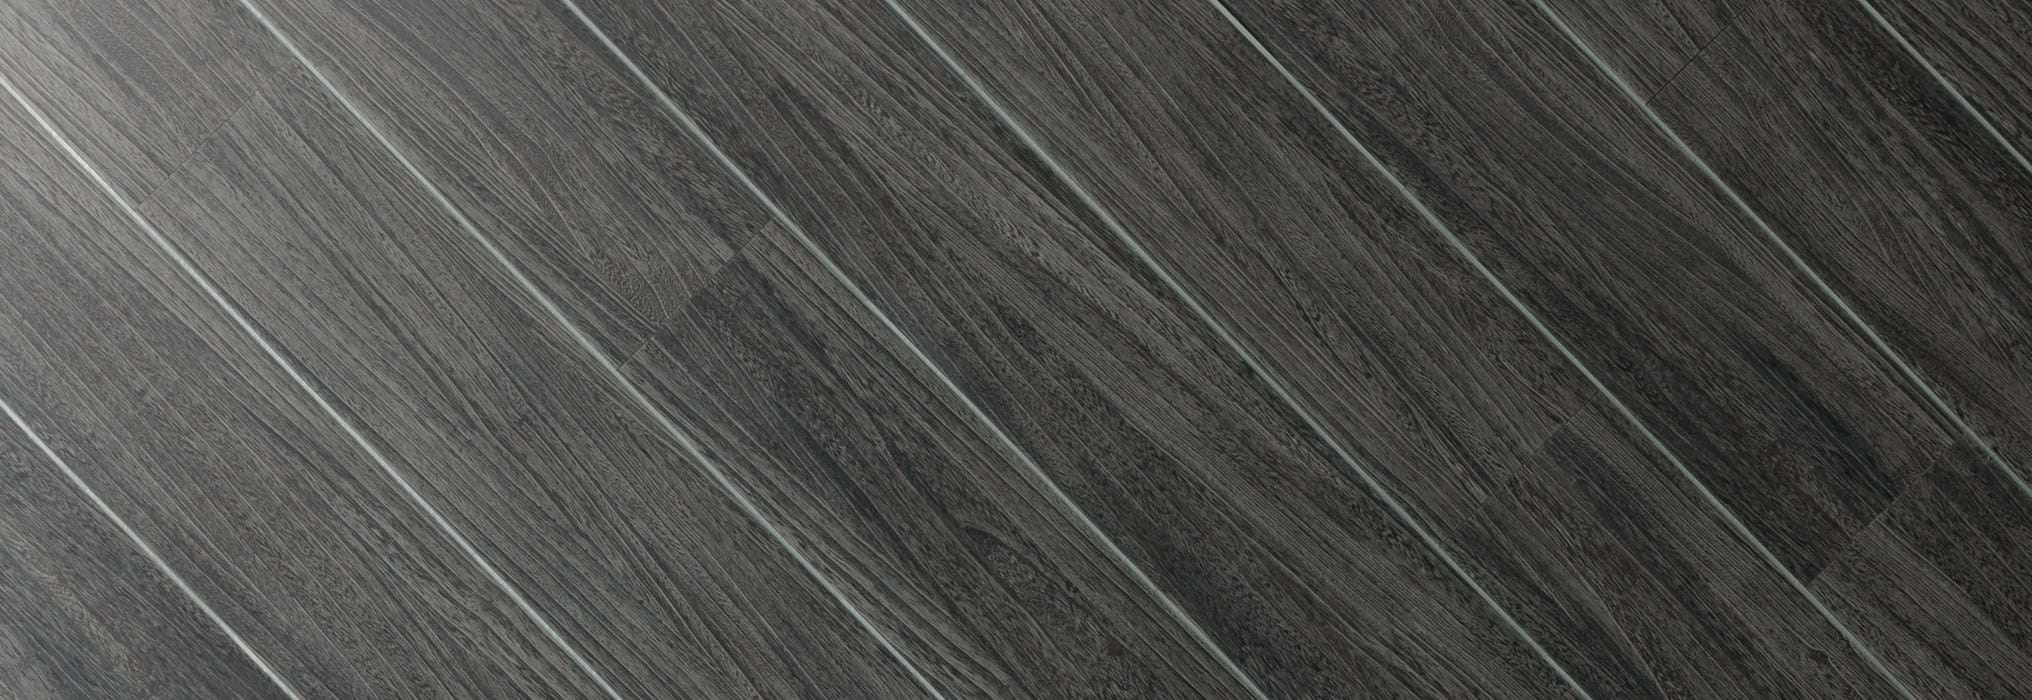 Amtico International: Quill Gesso - AM5W8060